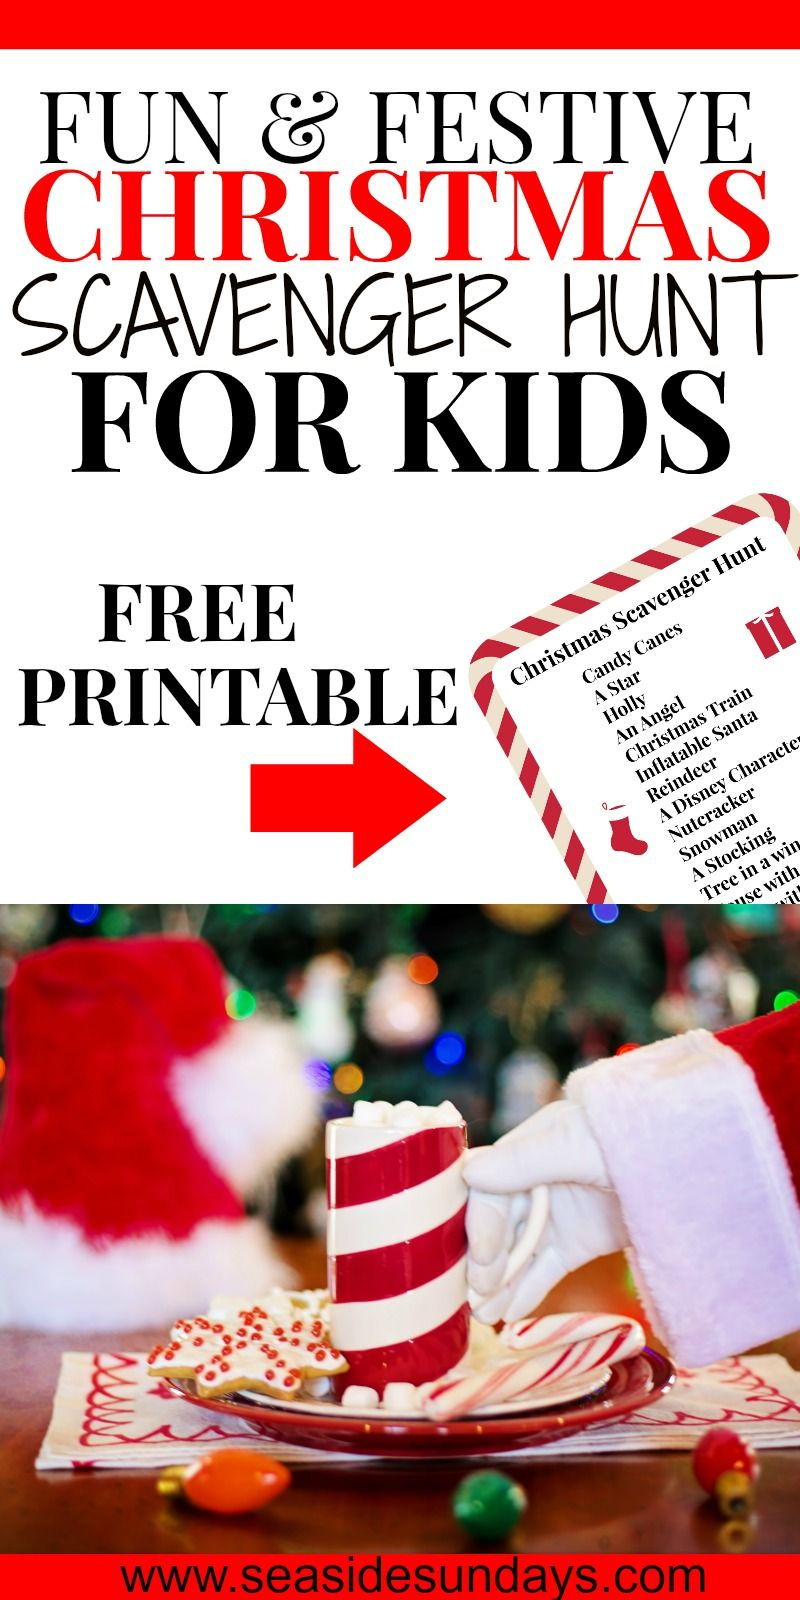 It's just a photo of Intrepid Free Printable Christmas Games for the Whole Family